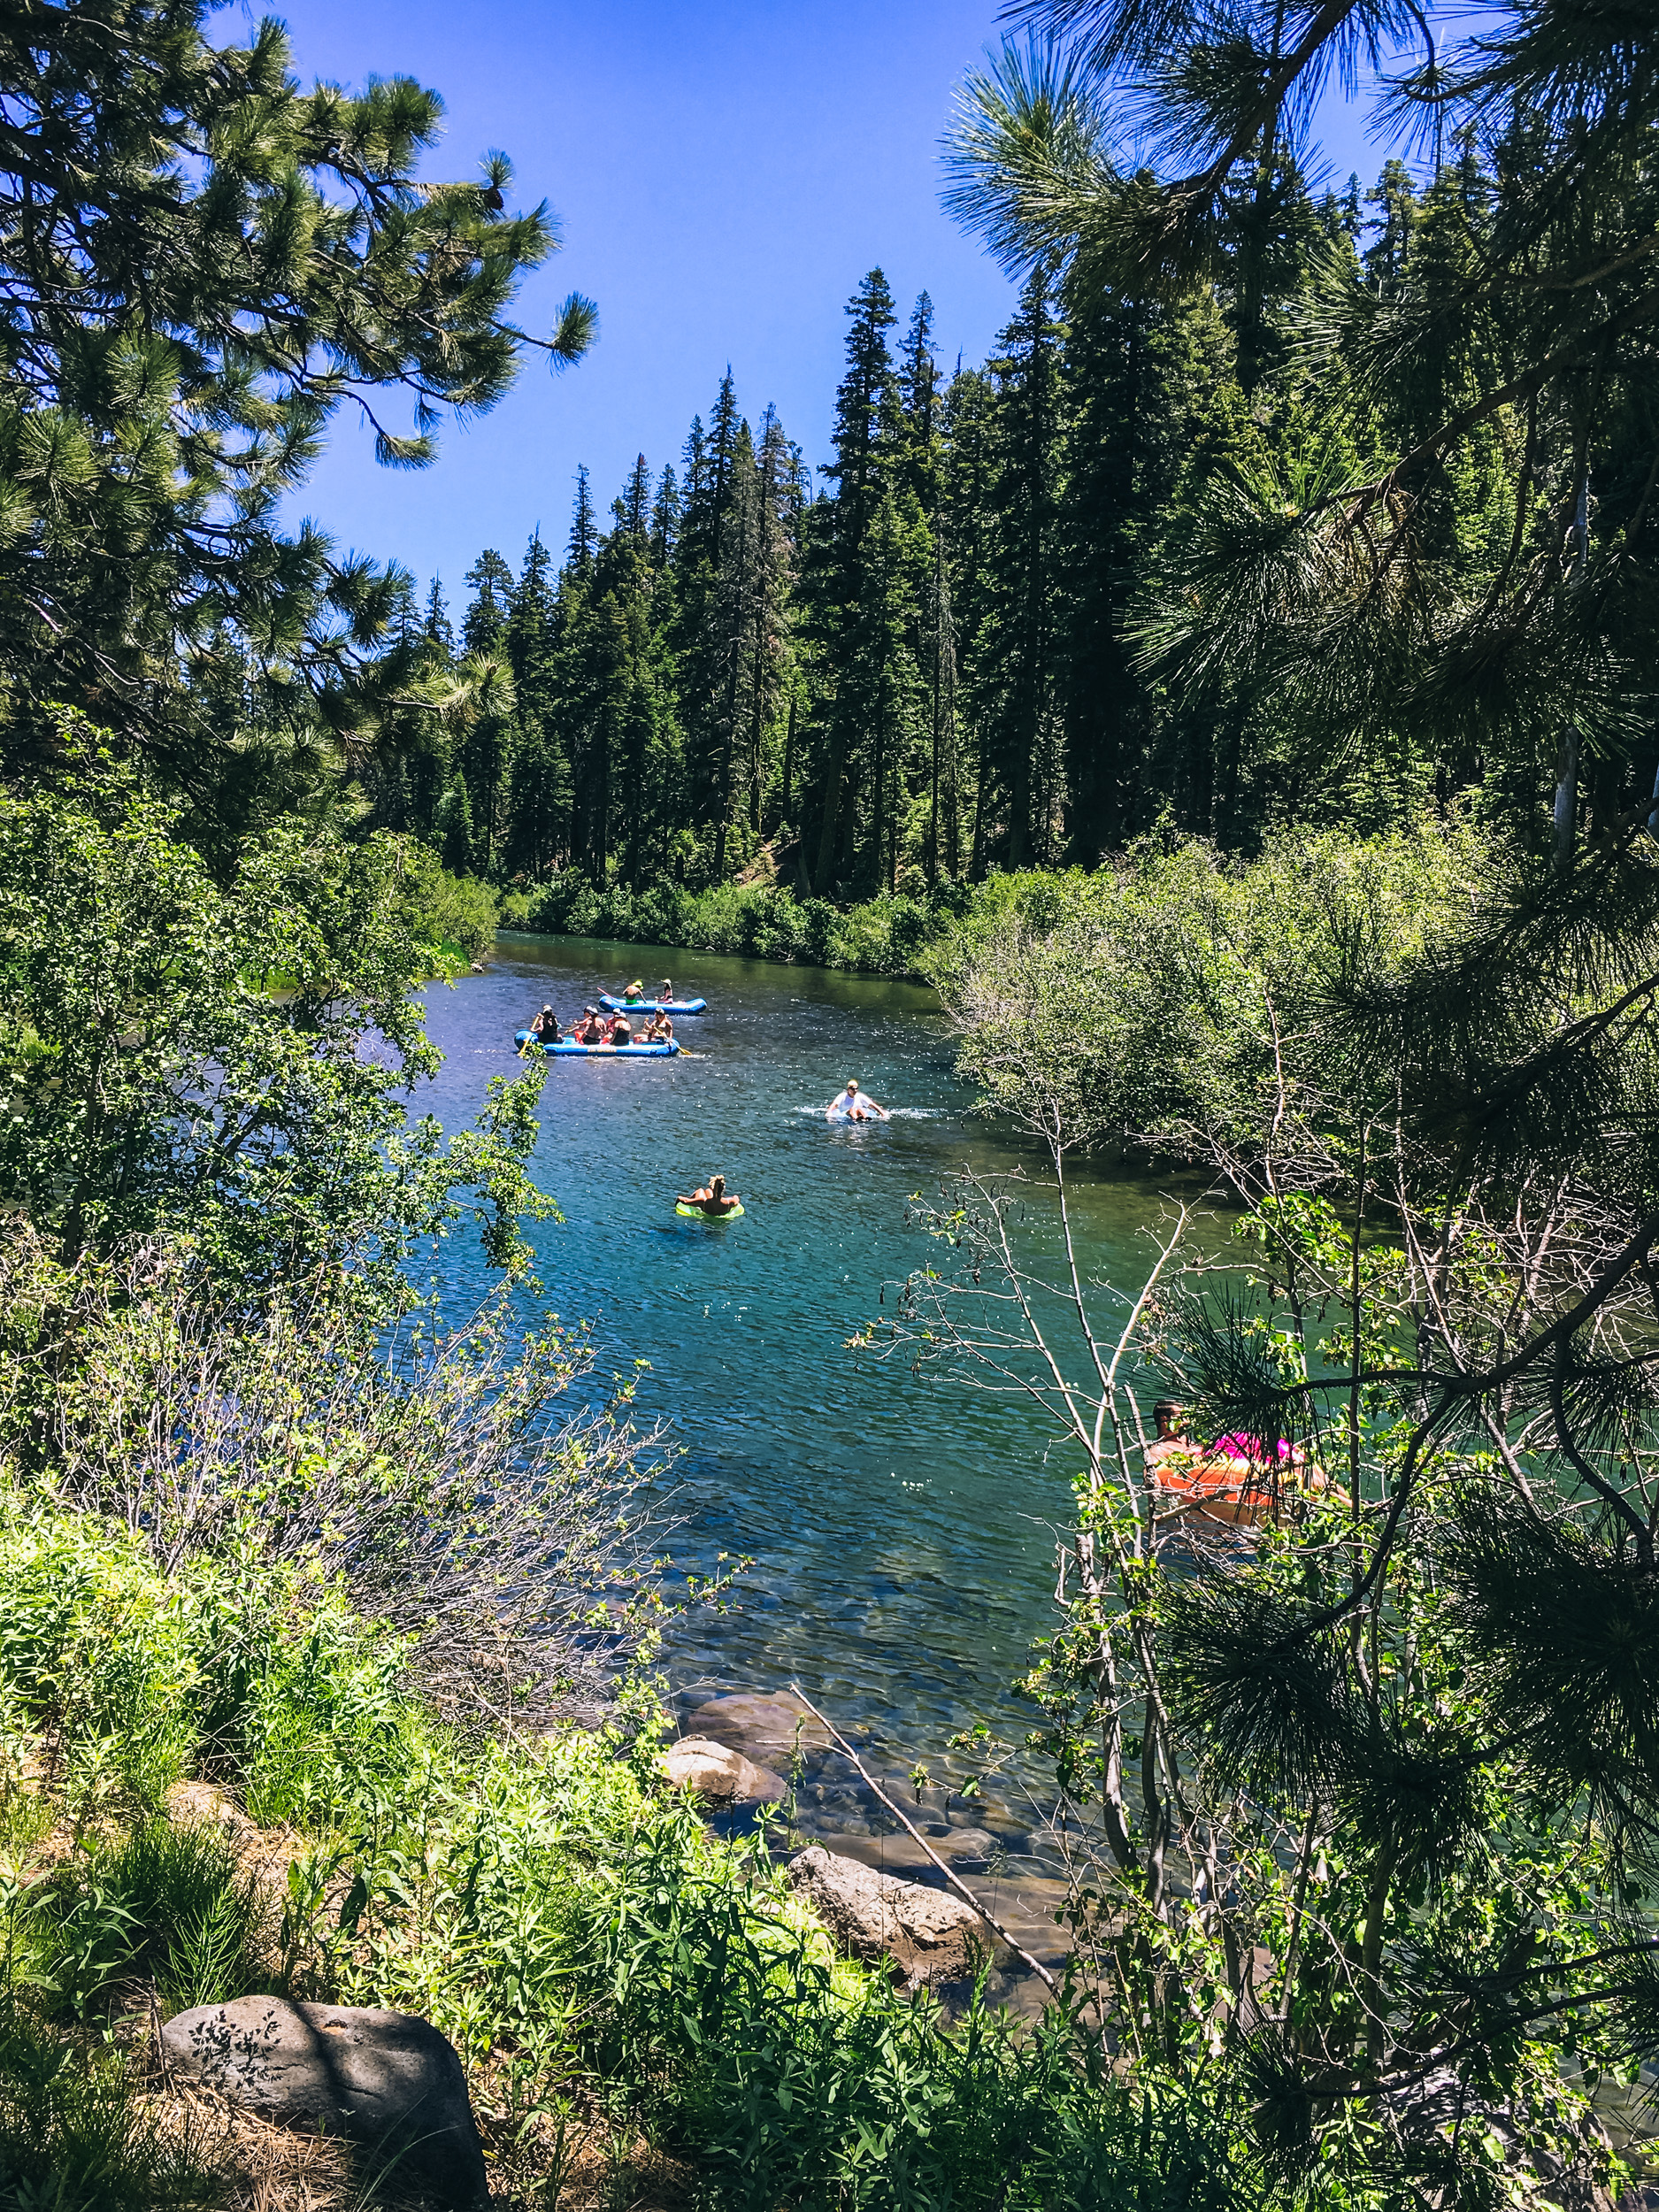 Truckee River, Lake Tahoe